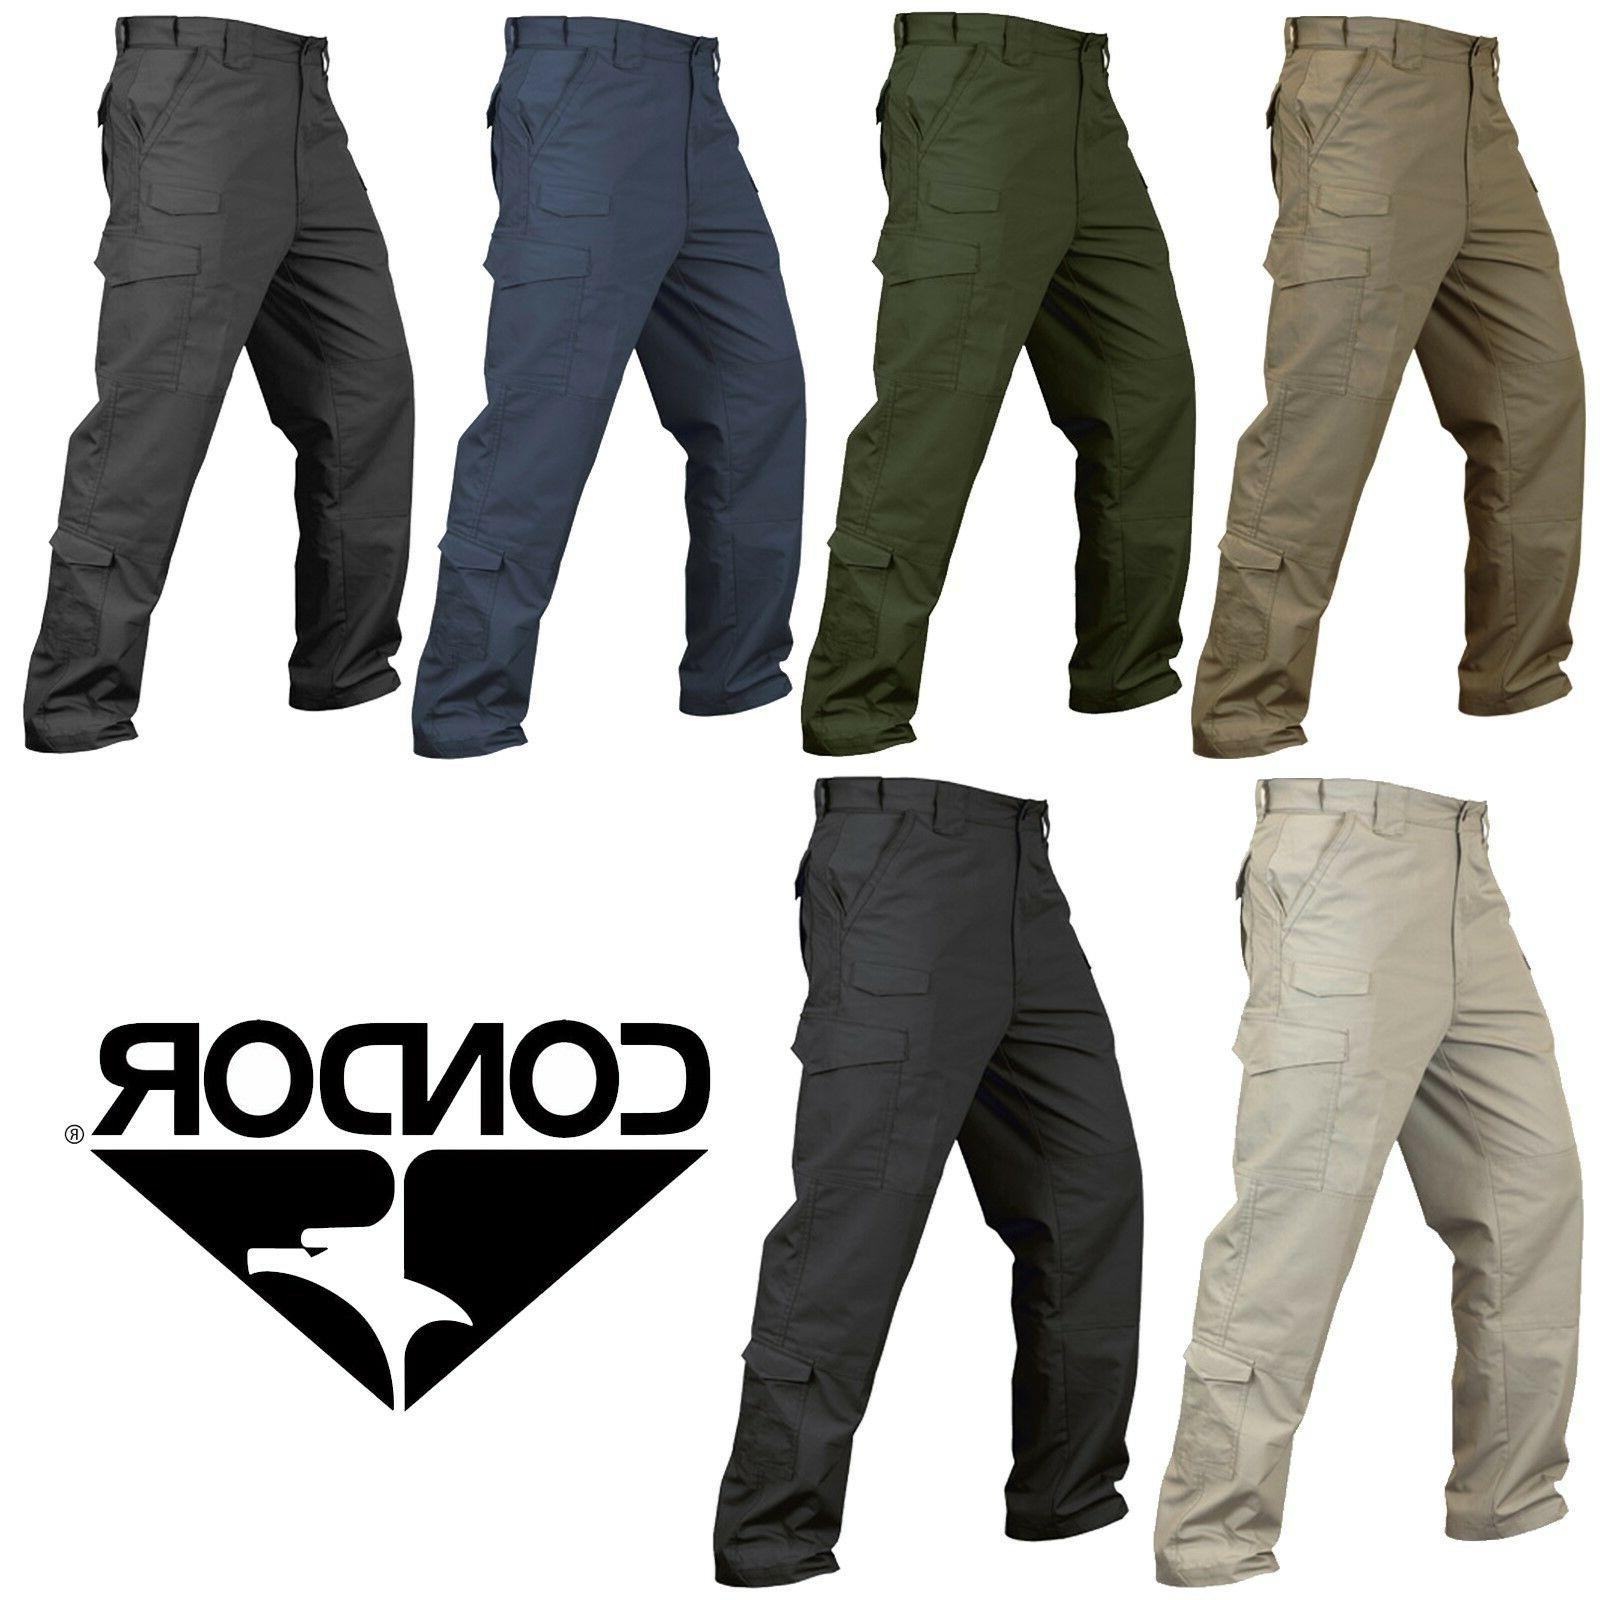 condor 608 tactical deep pocketed combat outdoor